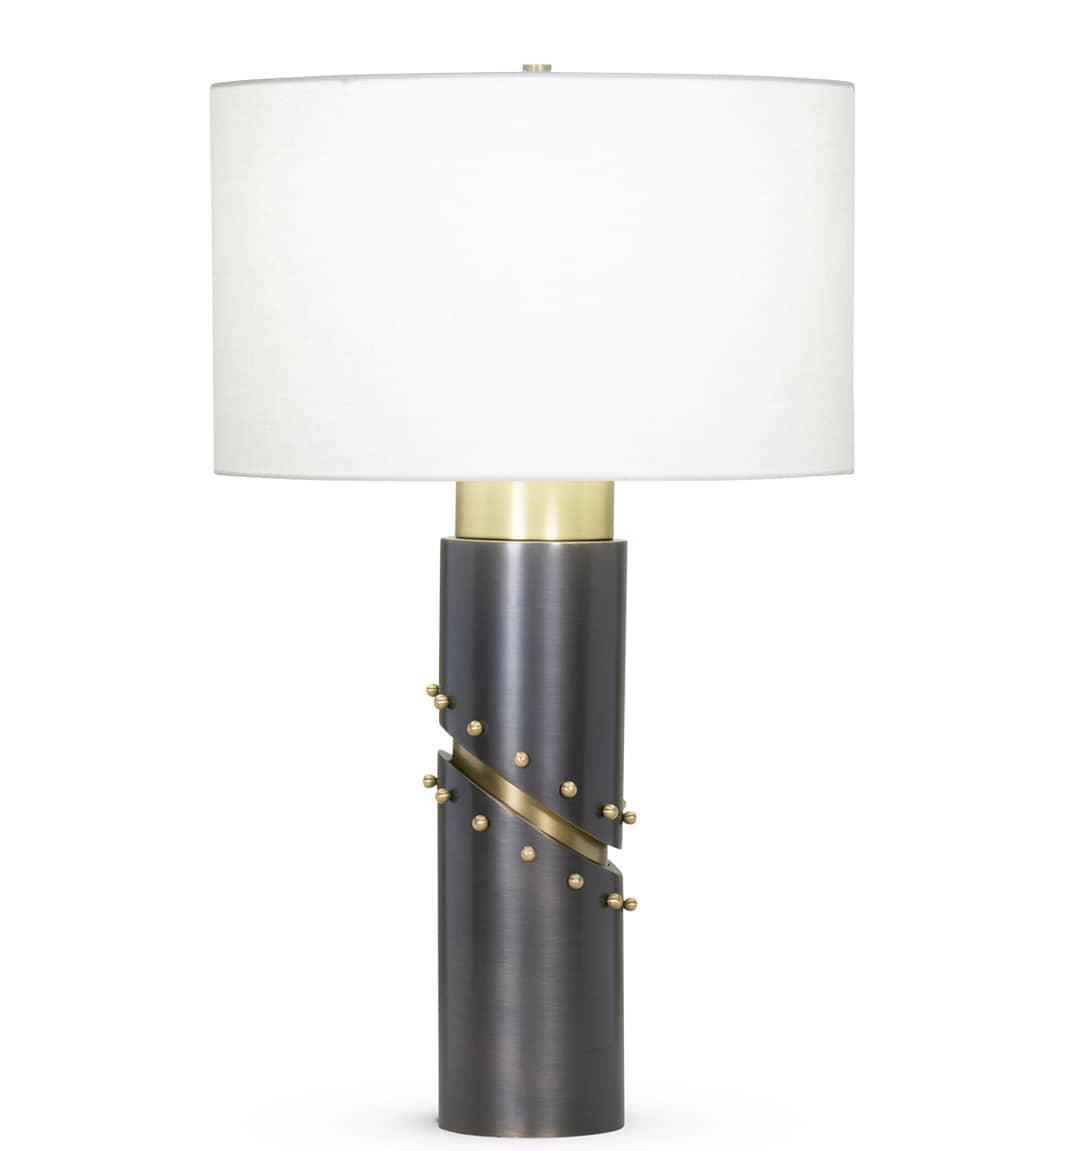 FlowDecor Wales Table lamp black and brass with linen shade